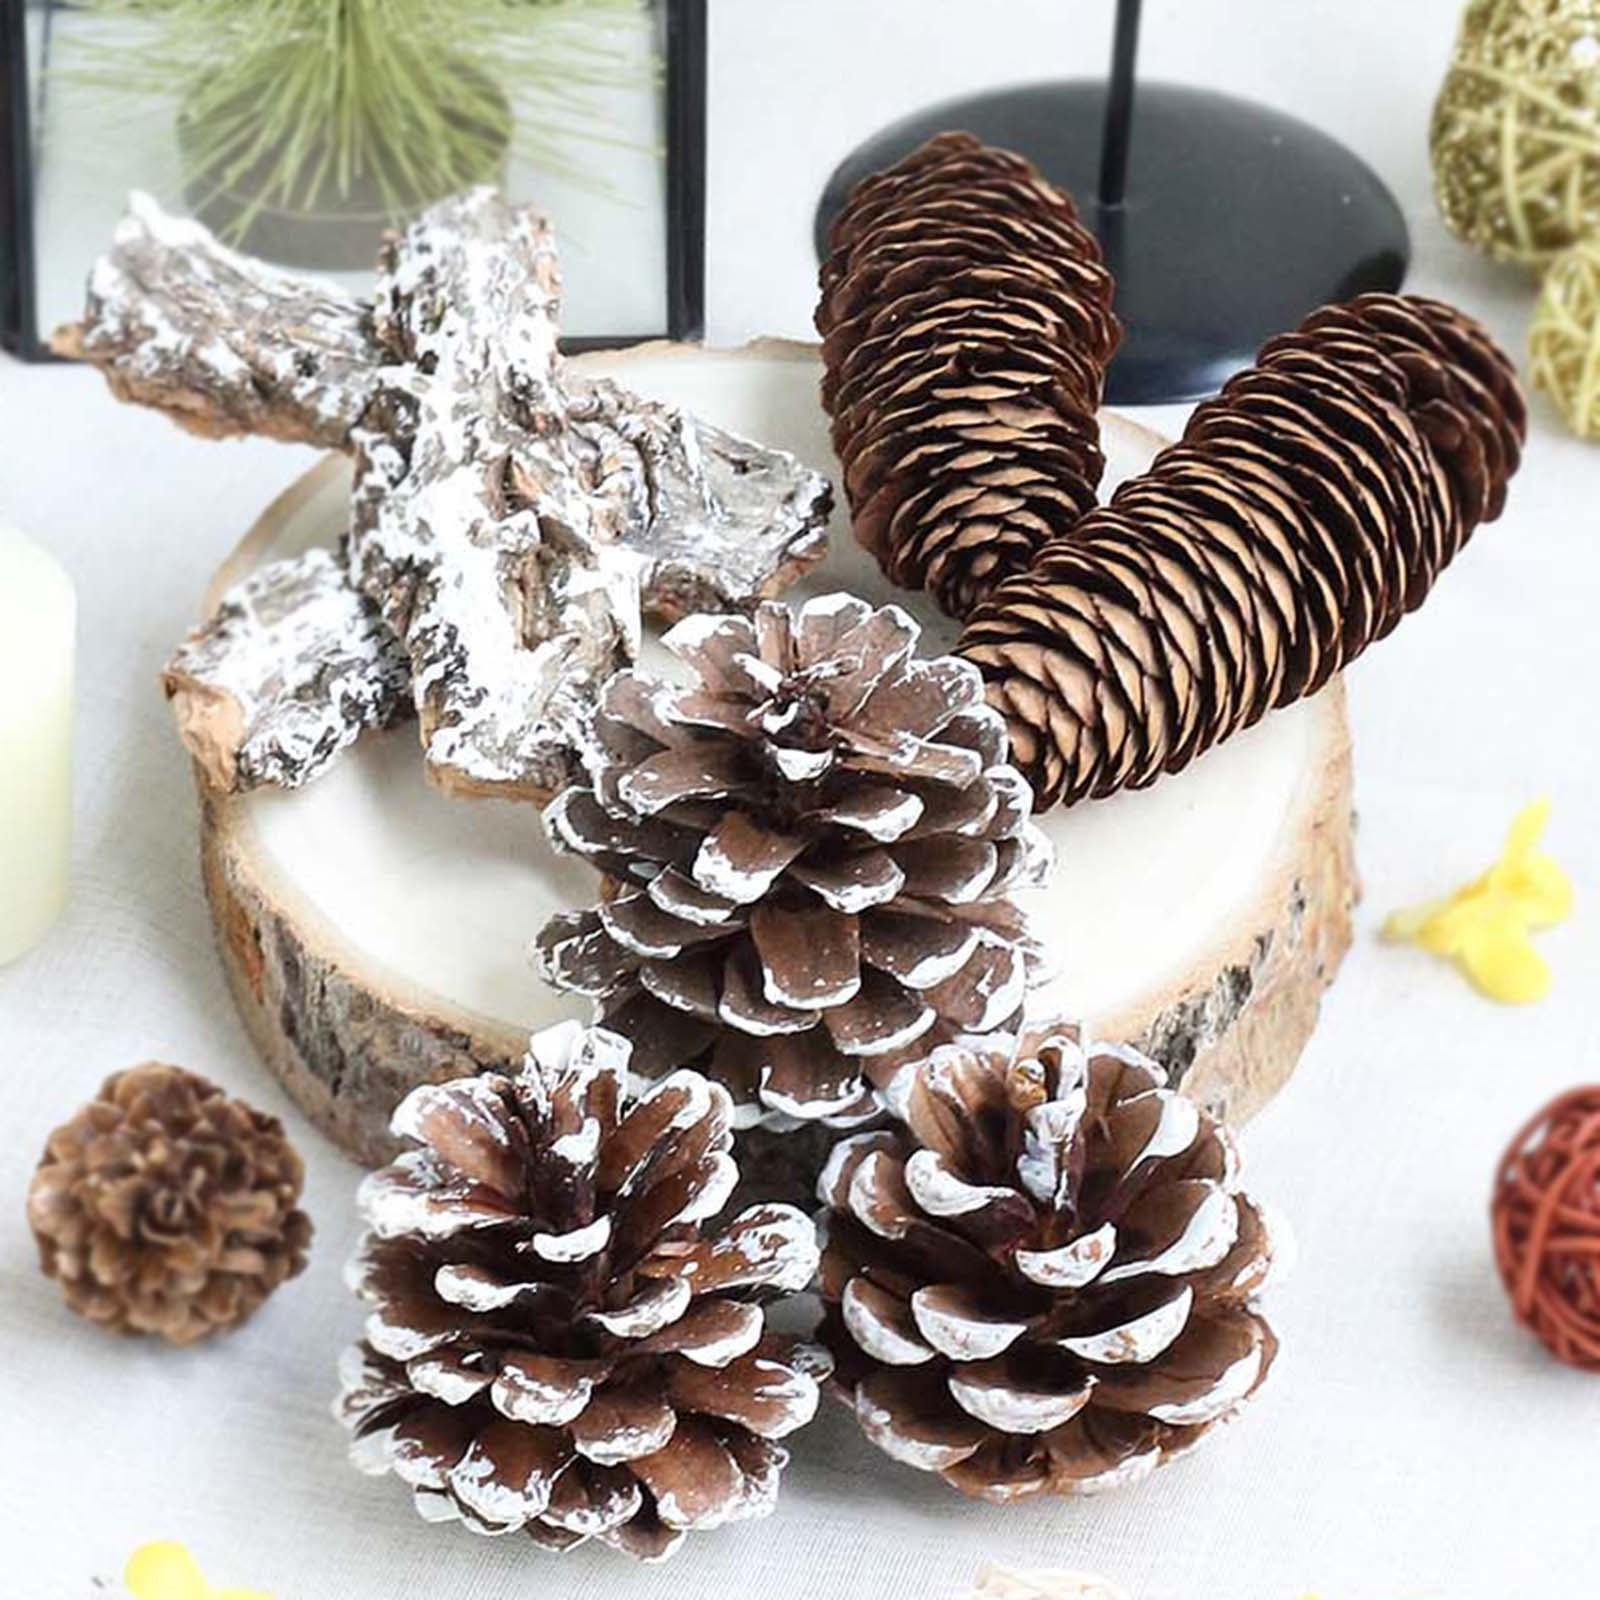 Christmas Pine Cone Vase filler decorations with LED lights New!